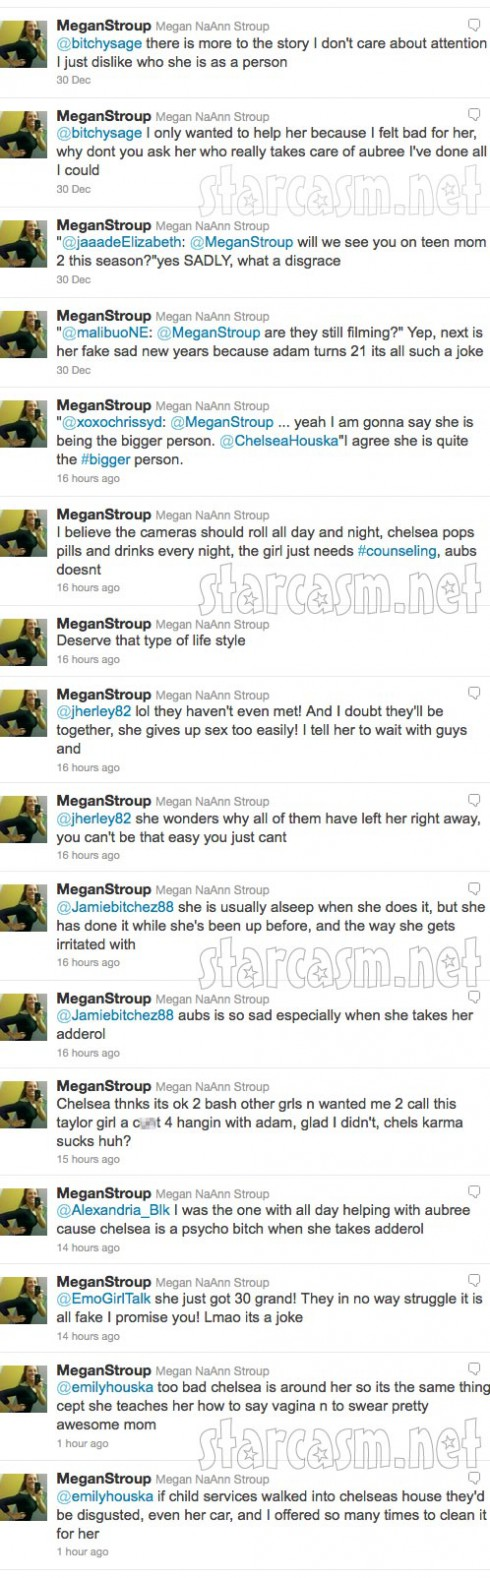 Megan Stroup continues to tweet about Teen Mom 2 star Chelsea Houska